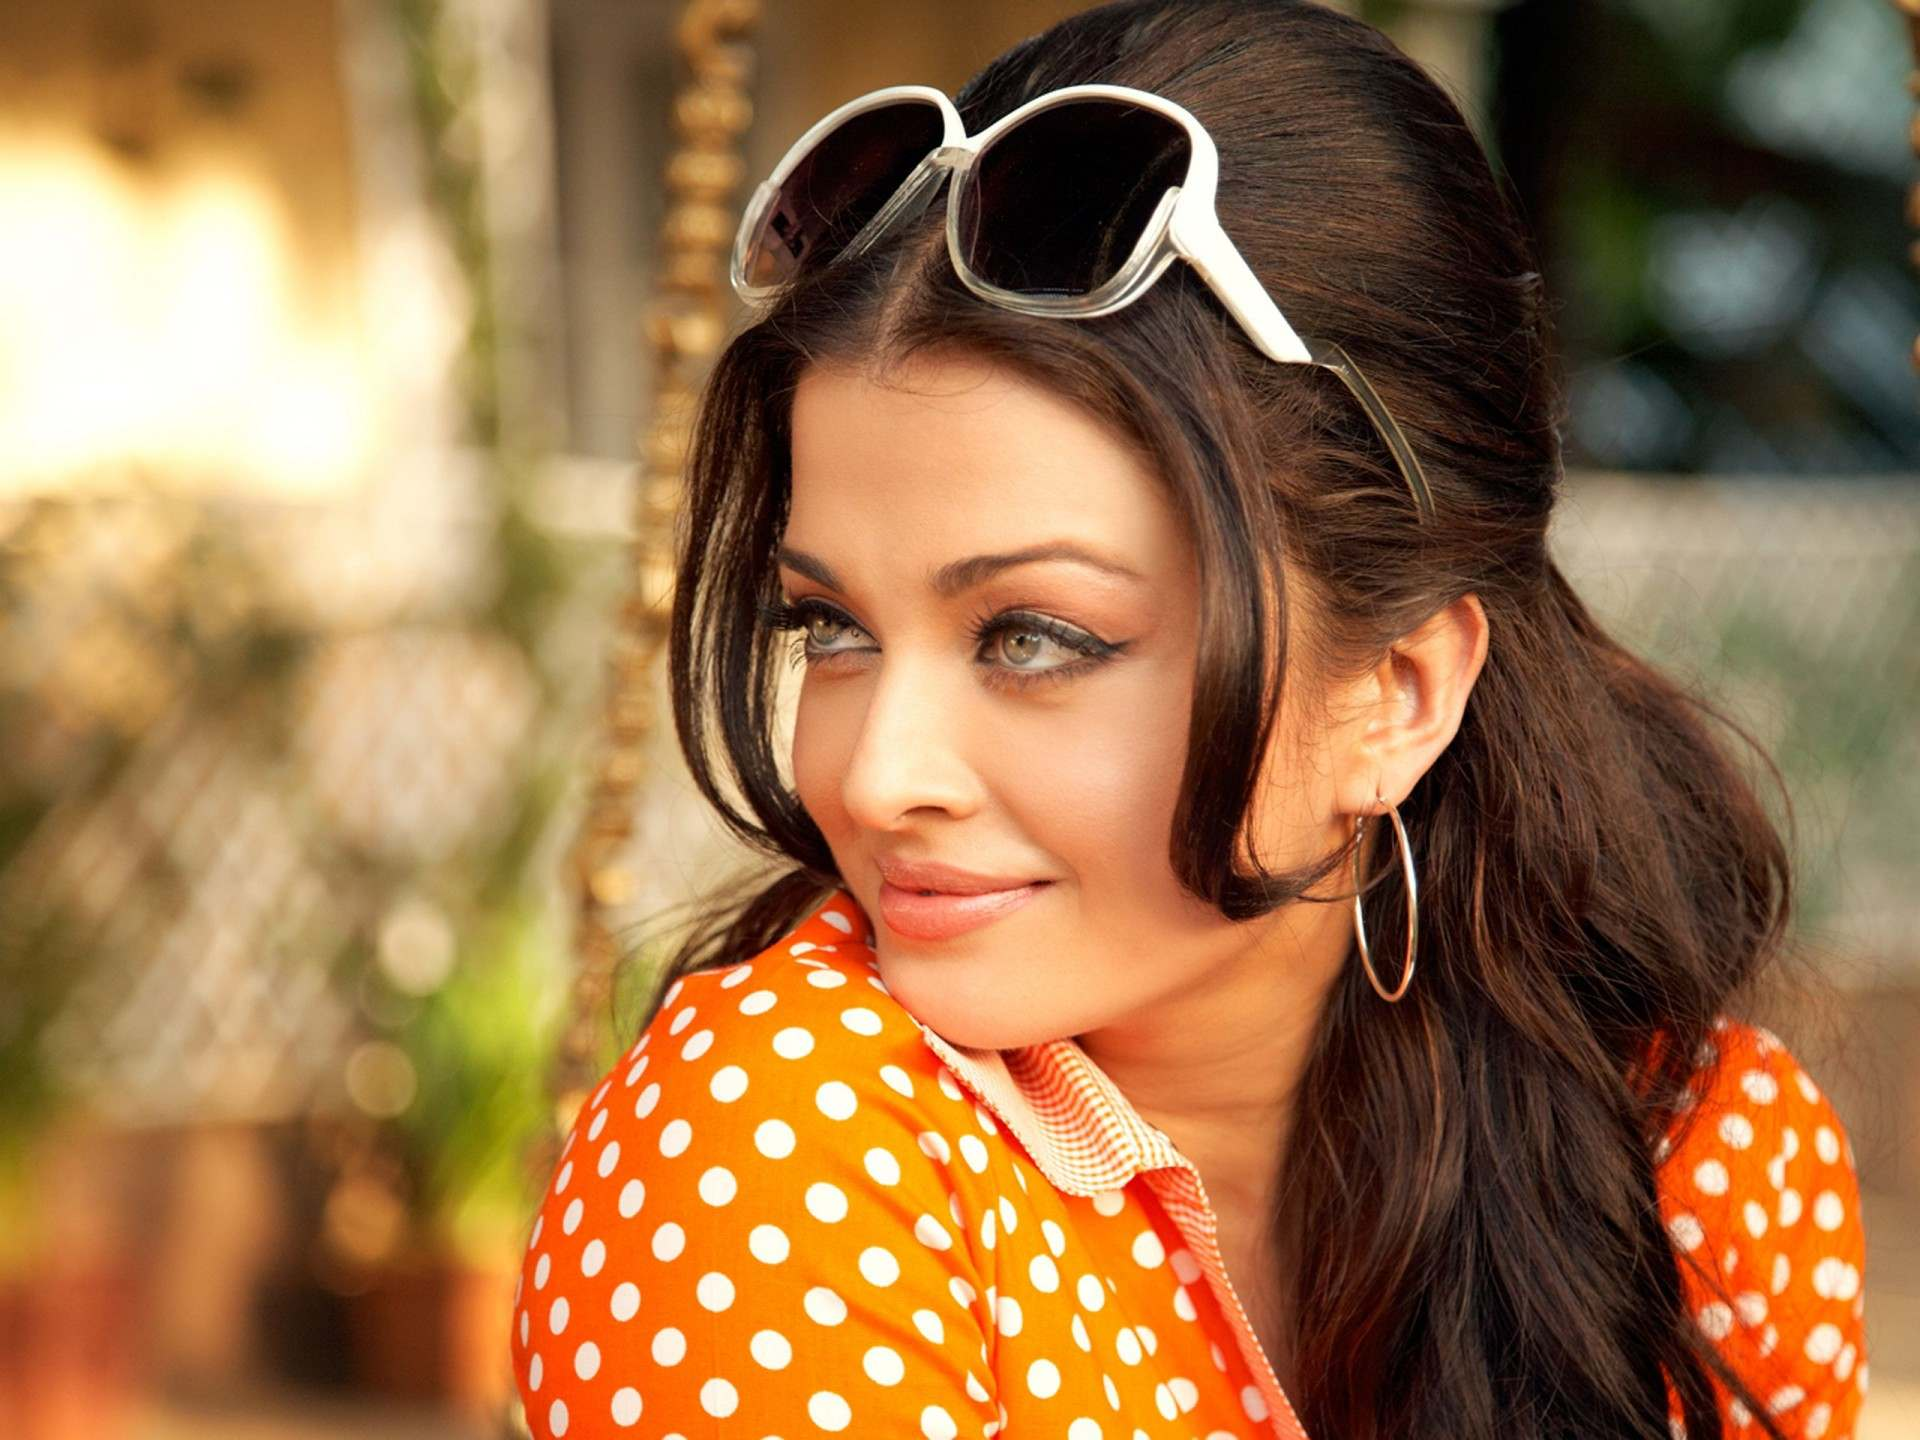 Aishwarya rai wallpaper, aishwarya rai wallpapers  Amazing Wallpapers 1920x1440